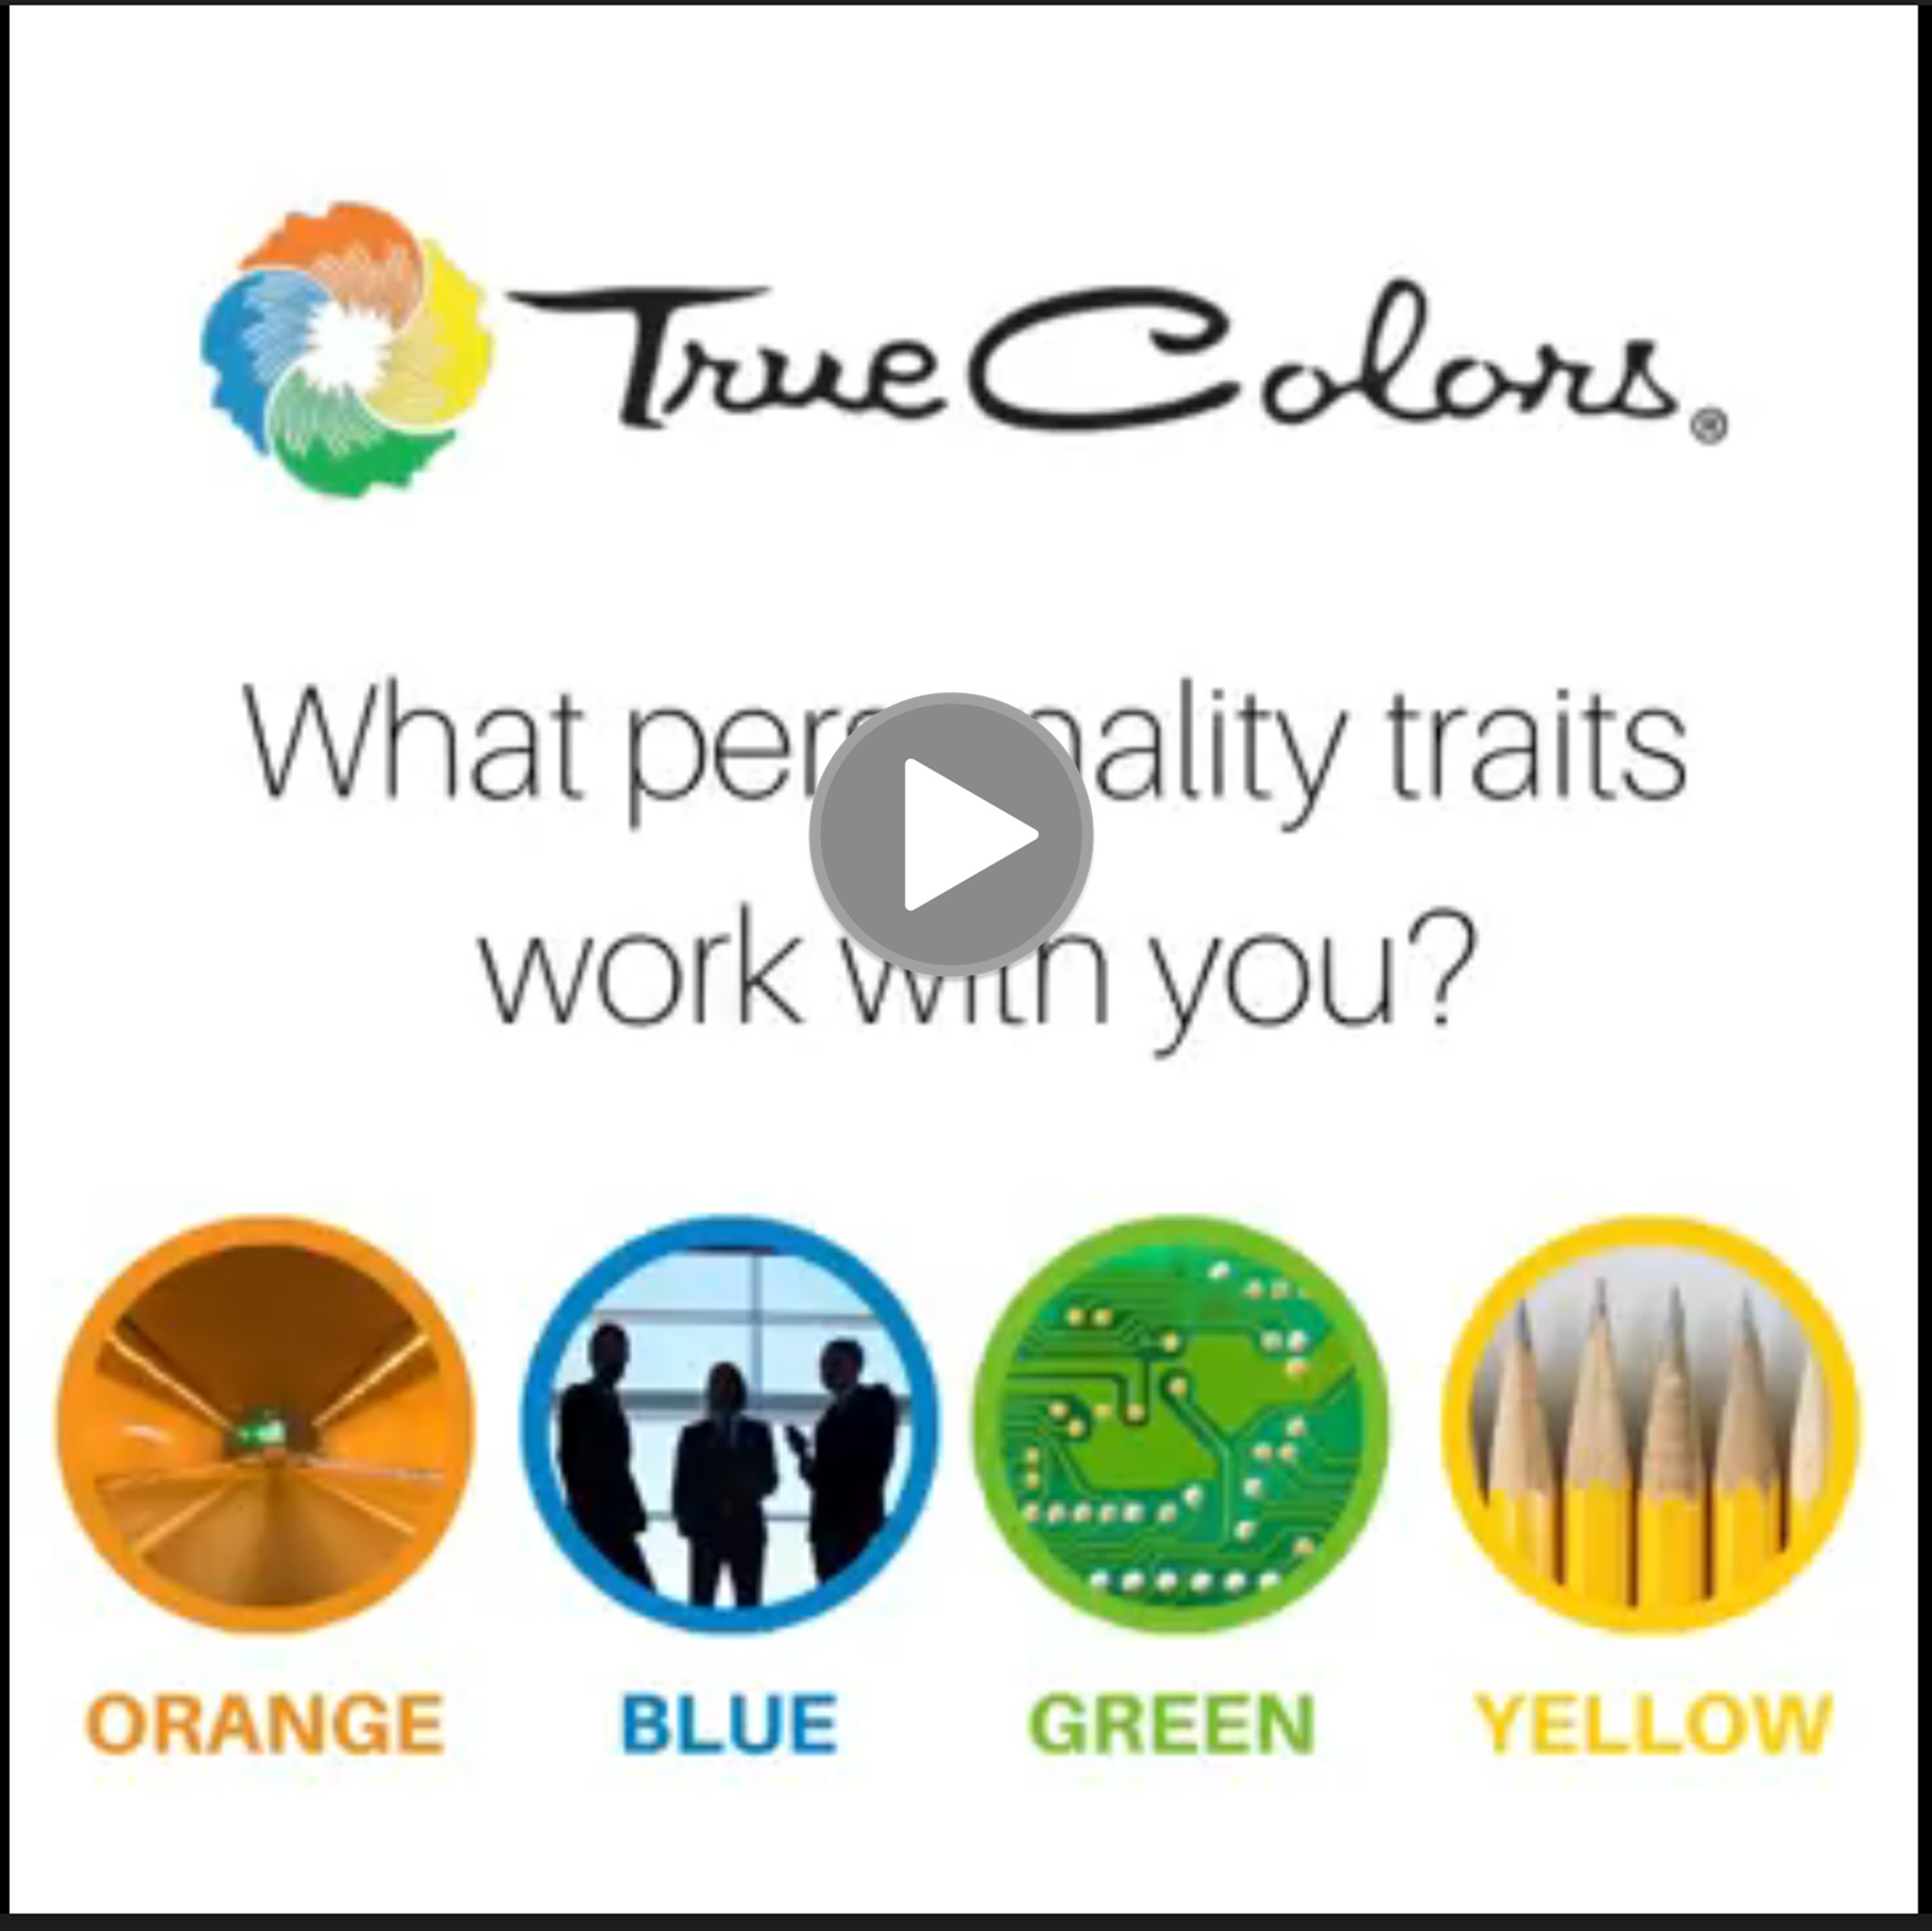 True Colors personality profiling with Presence Communications